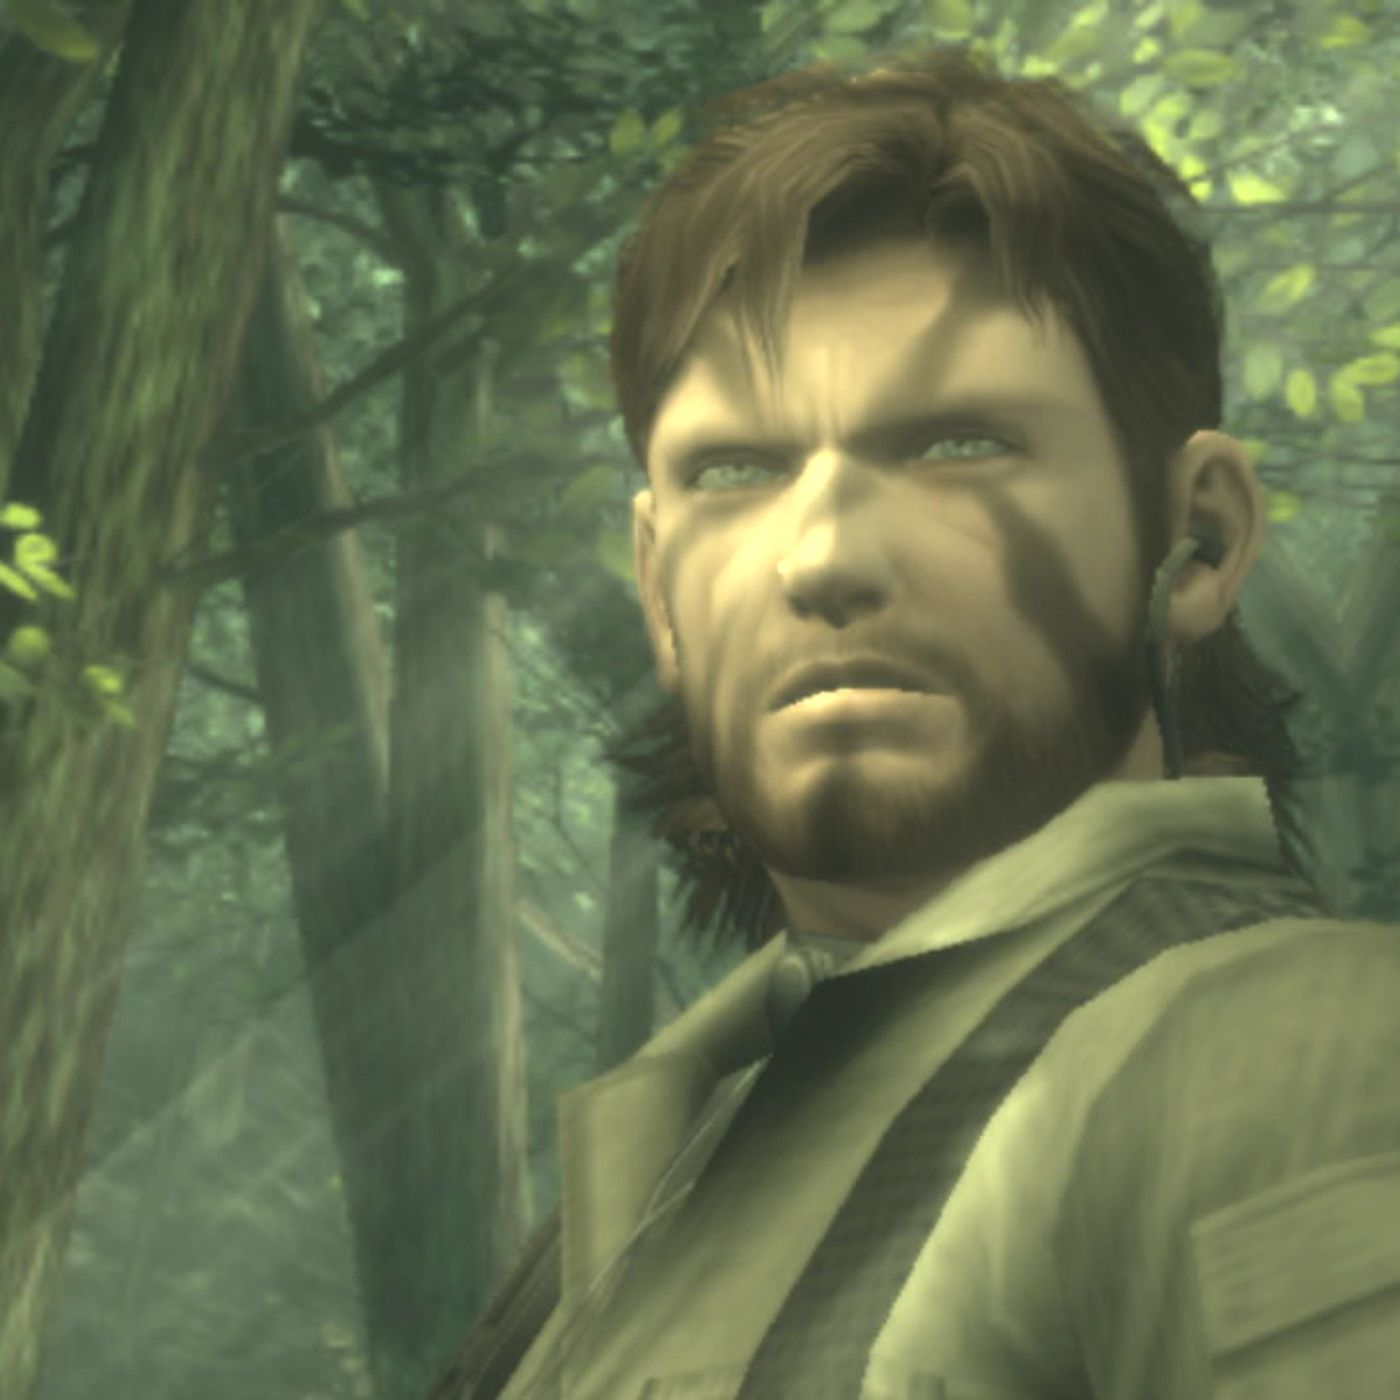 The Metal Gear Solid 3: Snake Eater ladder scene is still great, 14